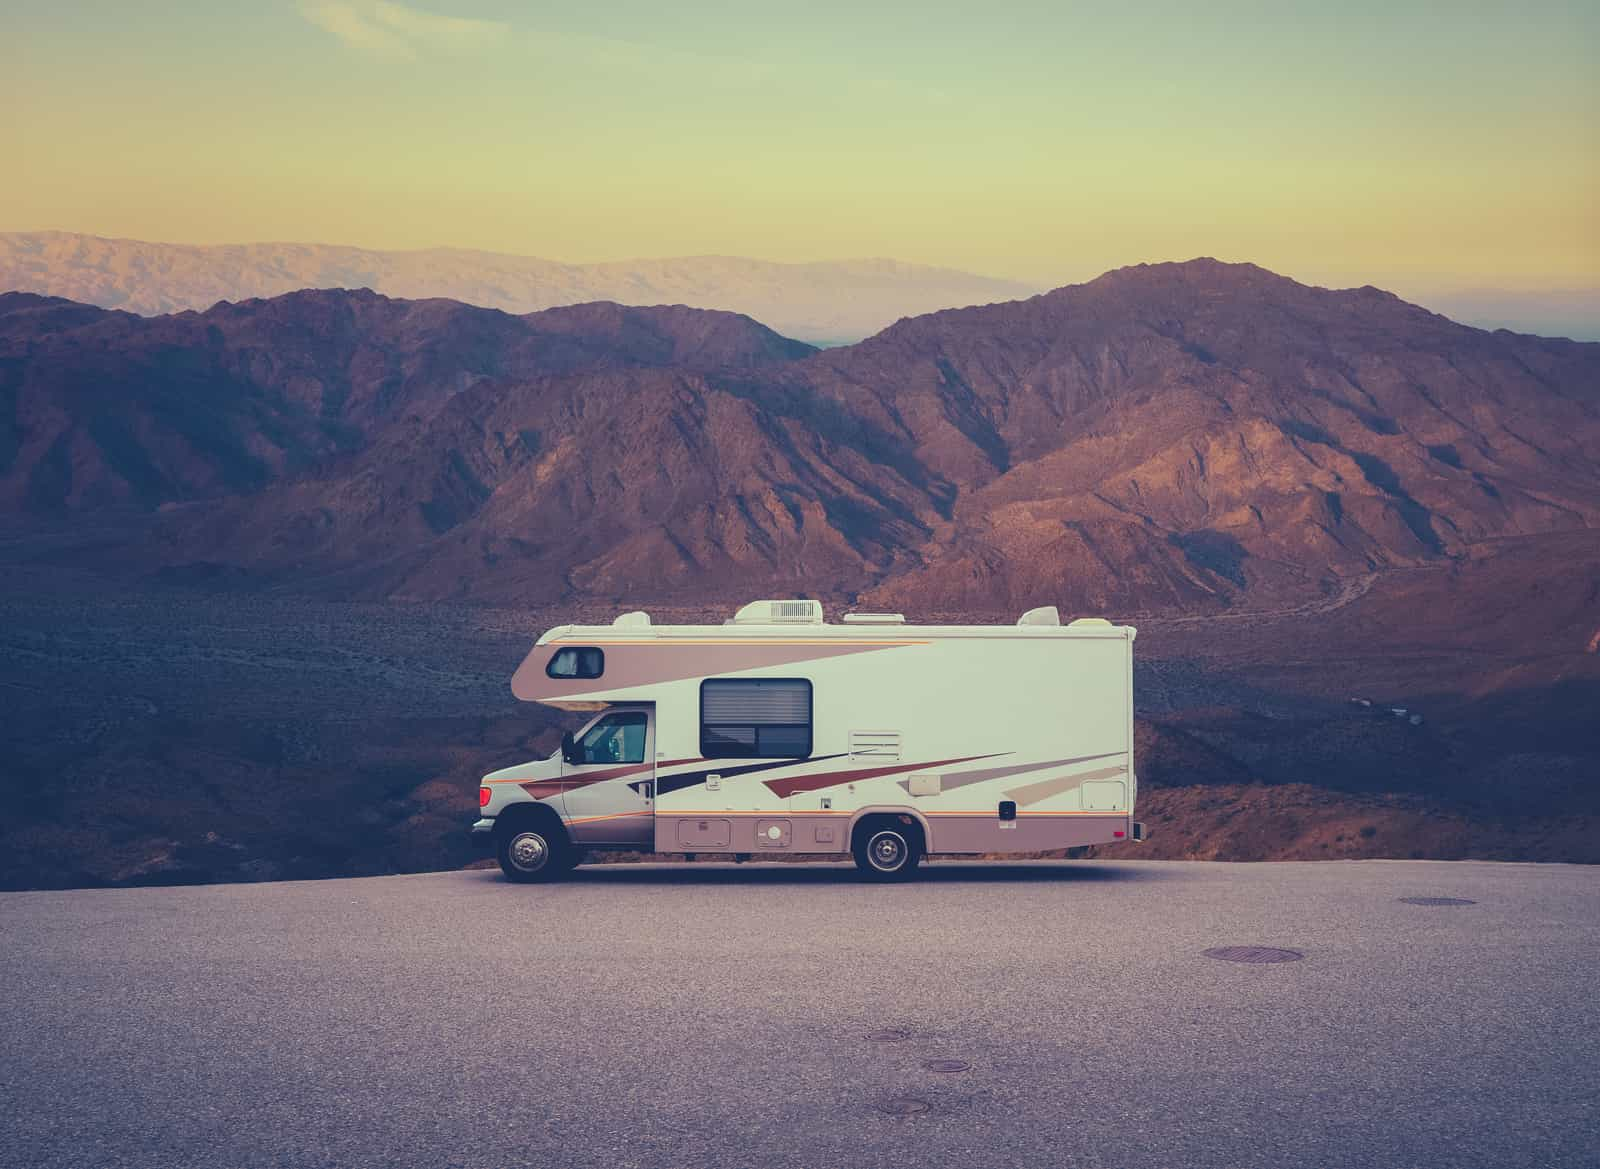 The 10 Best RV GPS Units (Reviews & Buying Guide) In 2020